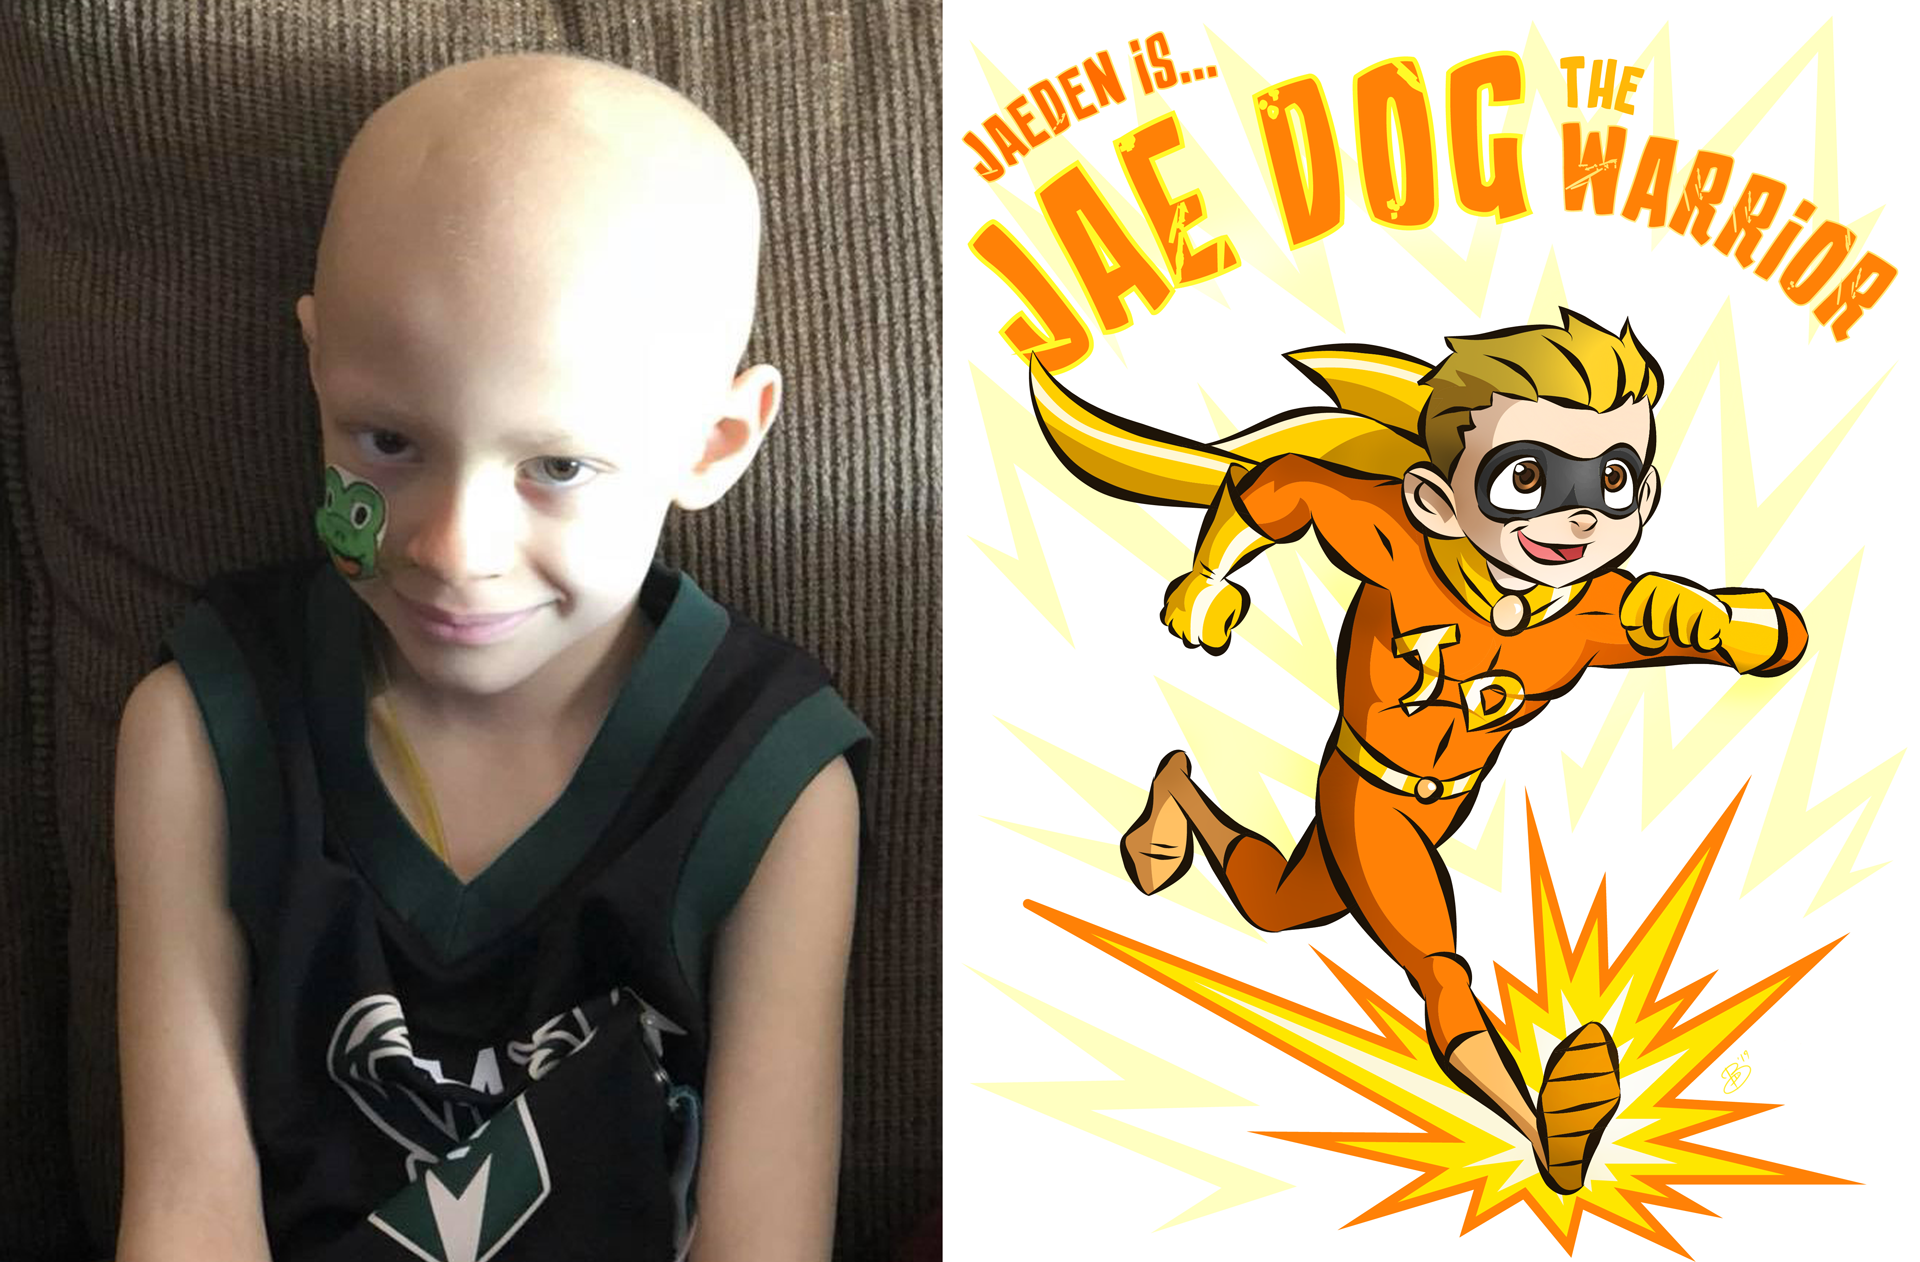 Jaeden (Dae Dog: The Warrior)